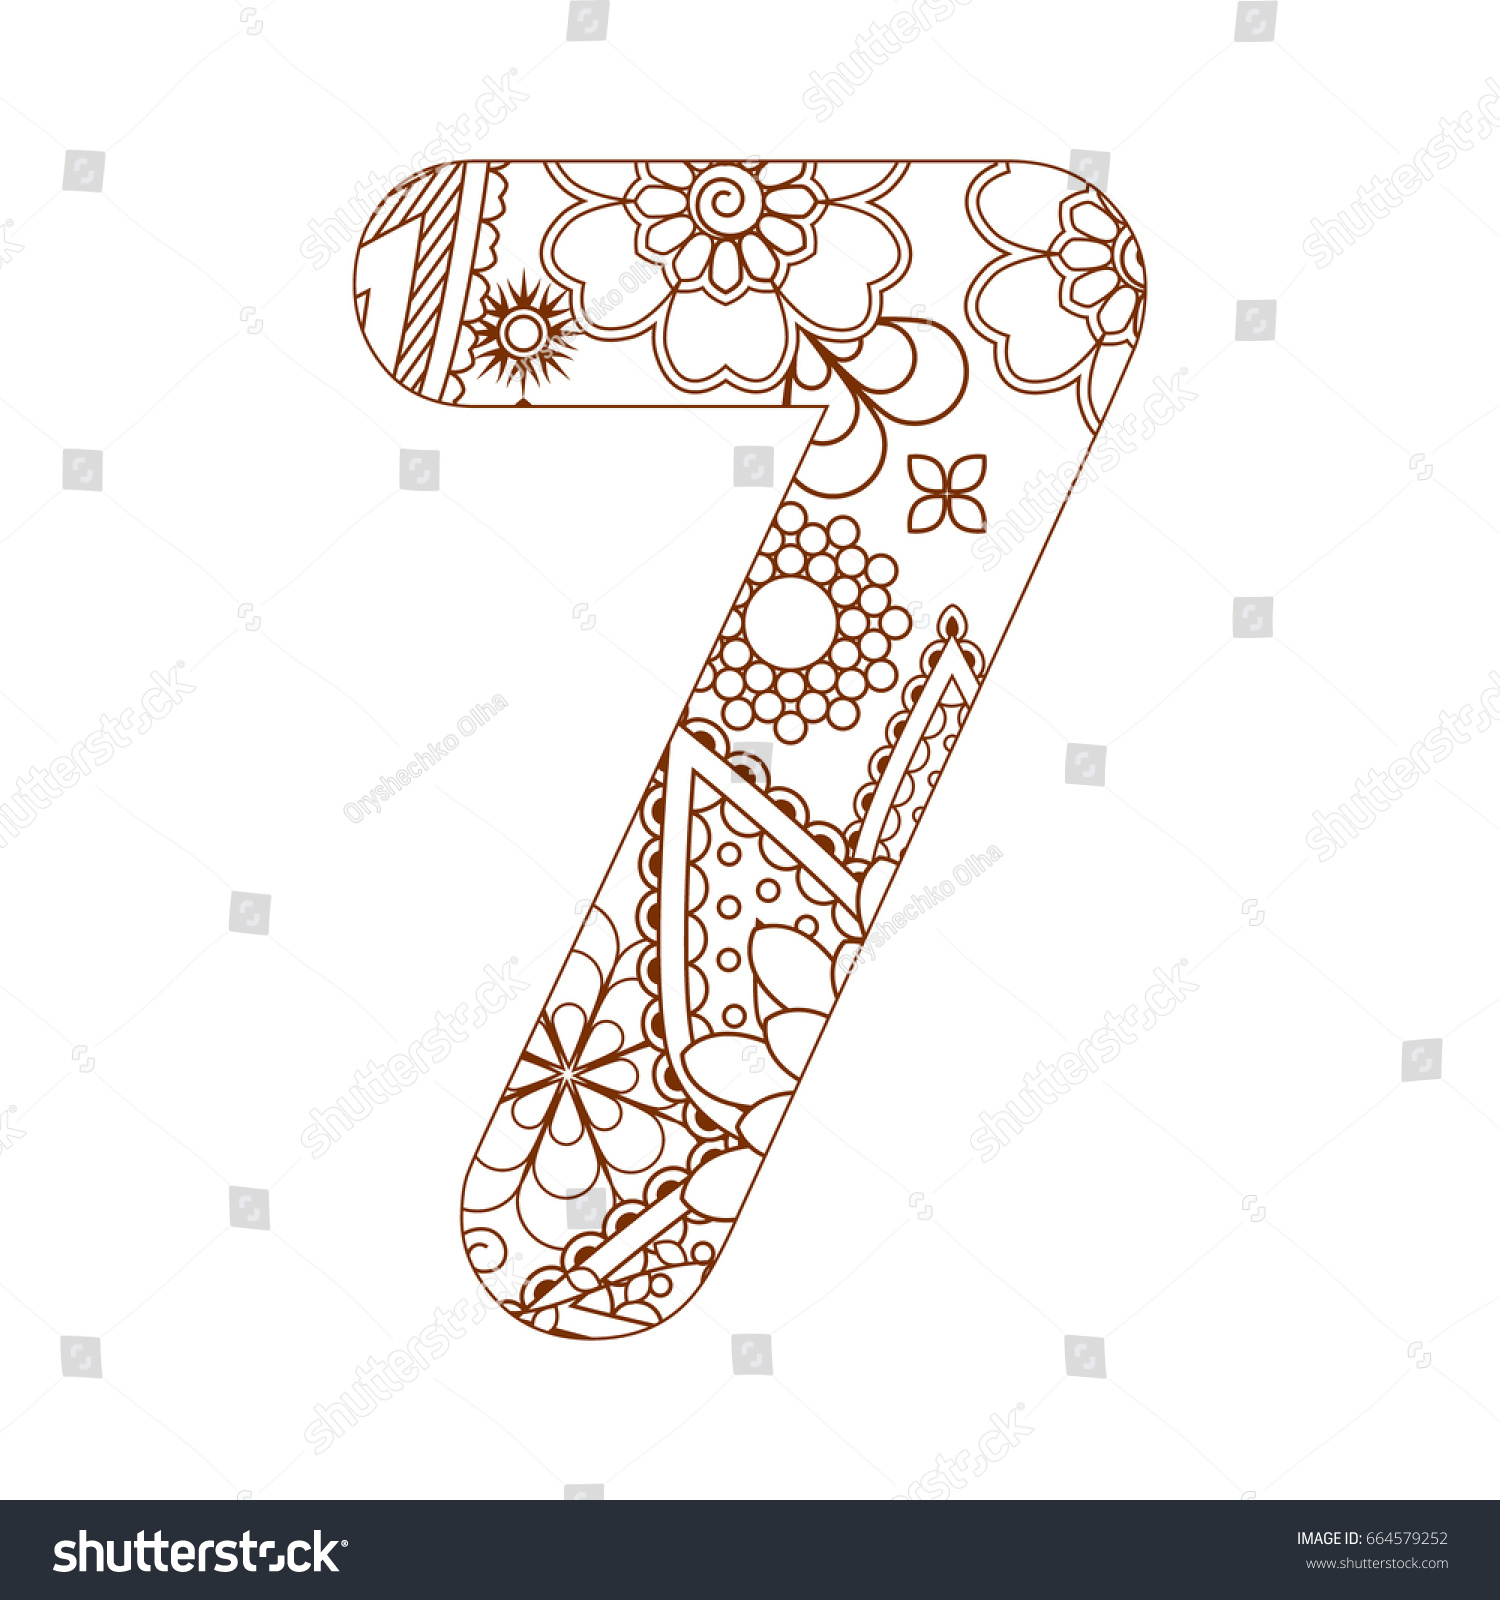 number 7 coloring page. Adult coloring page with number 7  Ornamental font Coloring Page Number Stock Vector 664579252